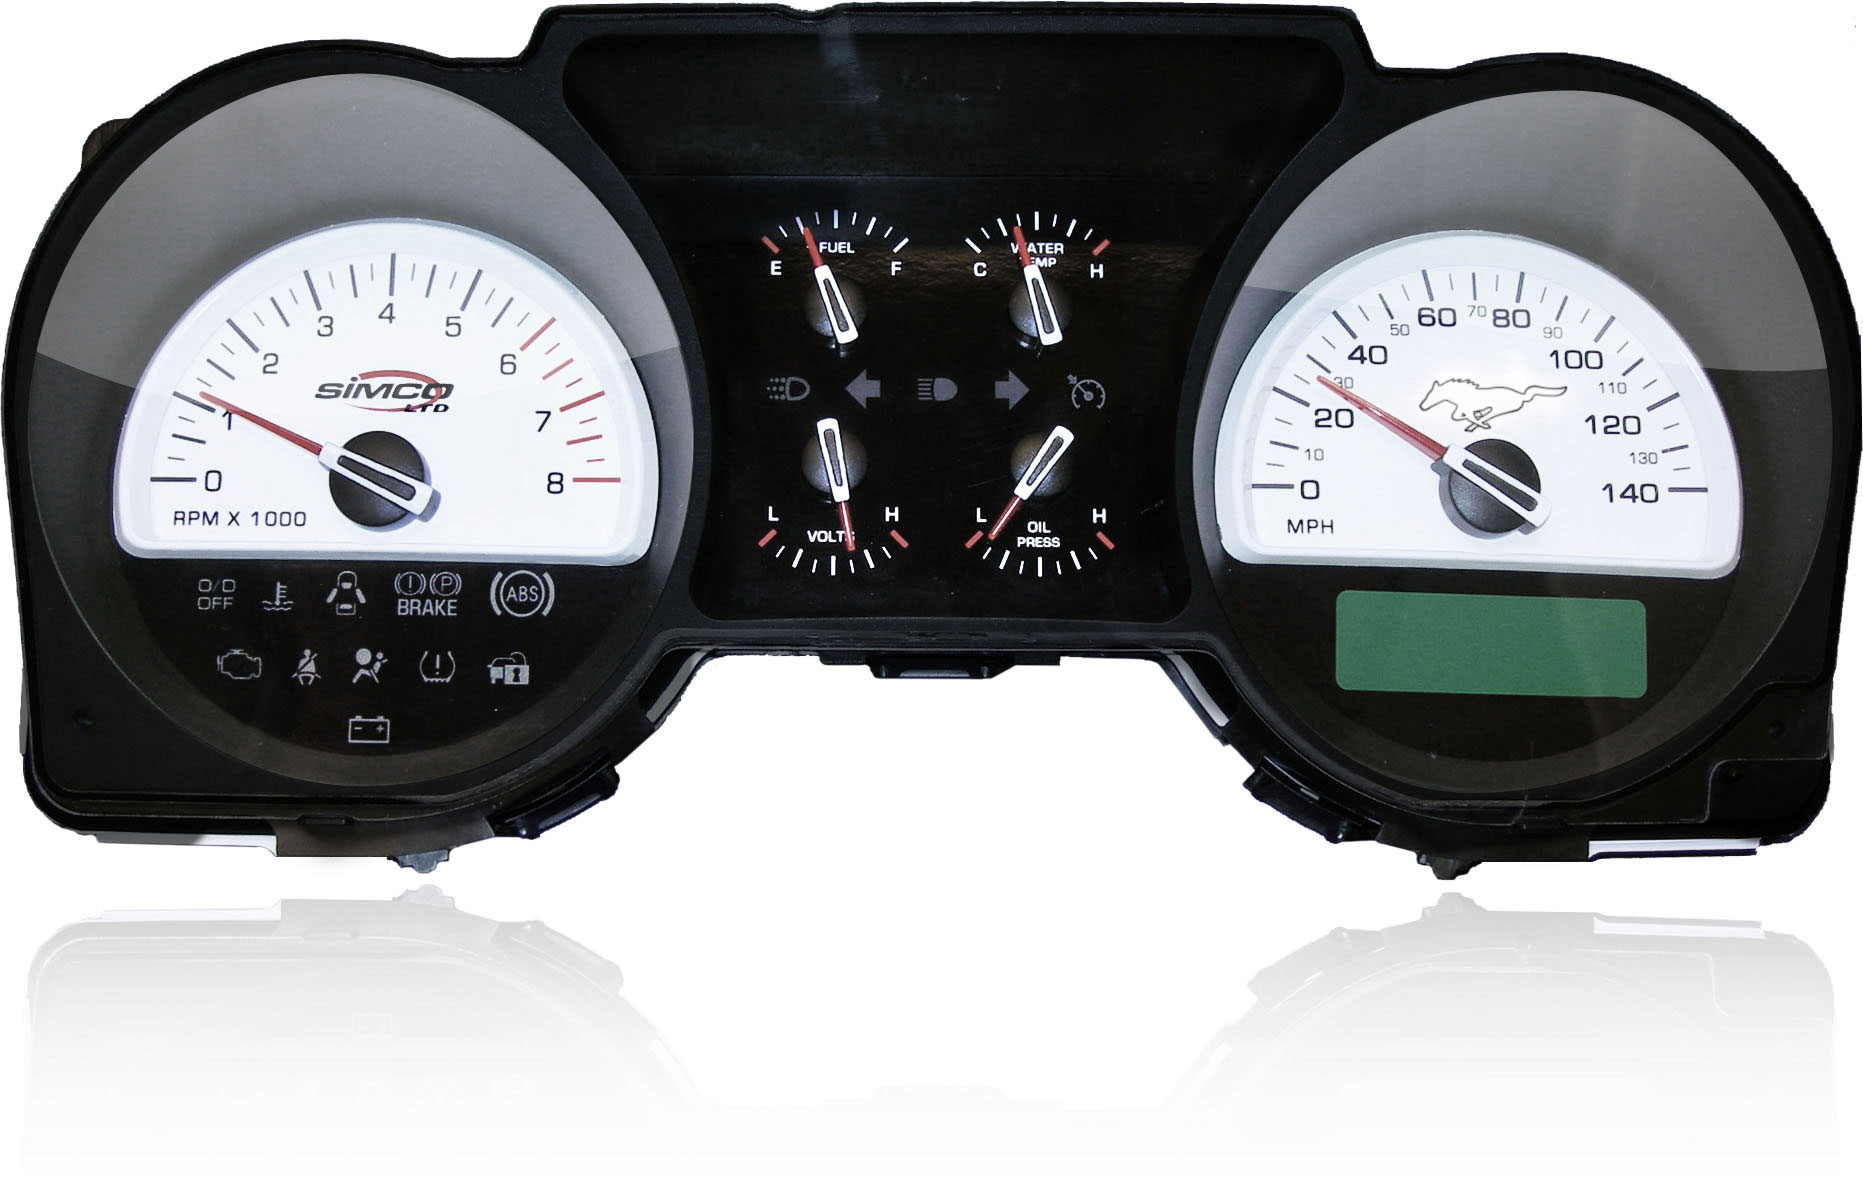 2005-2009 Simco Mustang V6 - 6 GAUGE CLASSIC SERIES COLOR